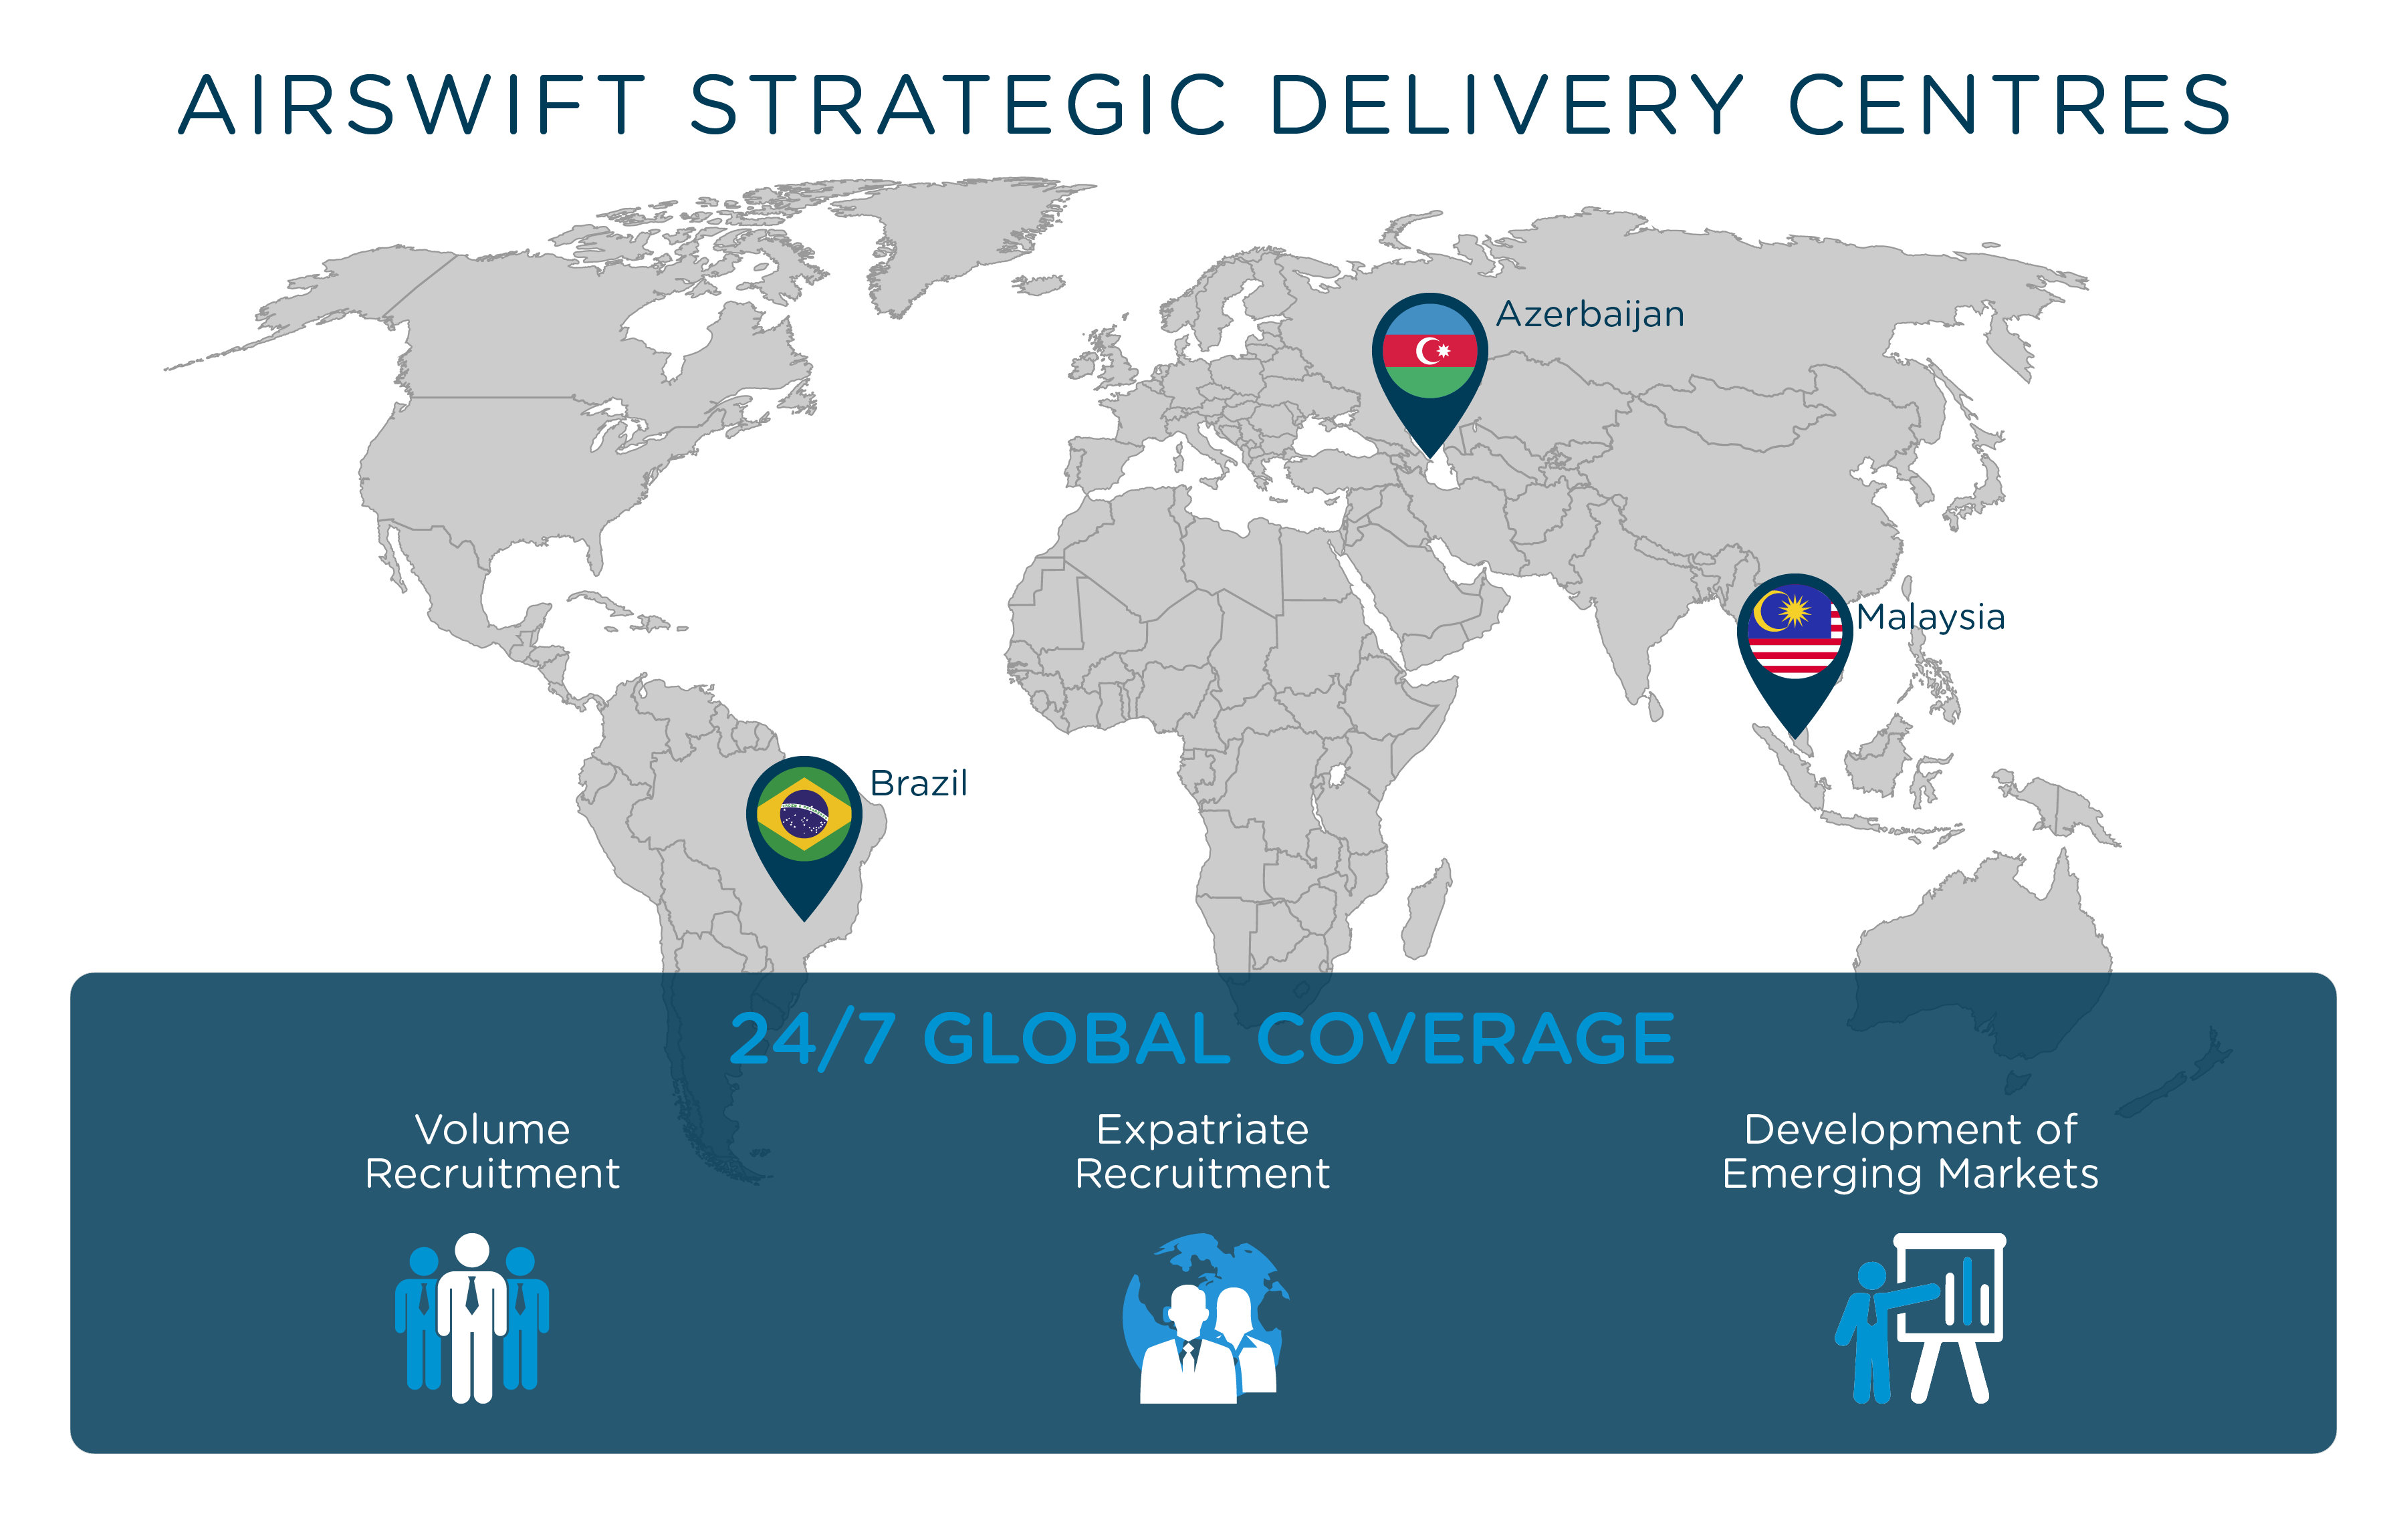 Airswift Strategic Delivery Centres